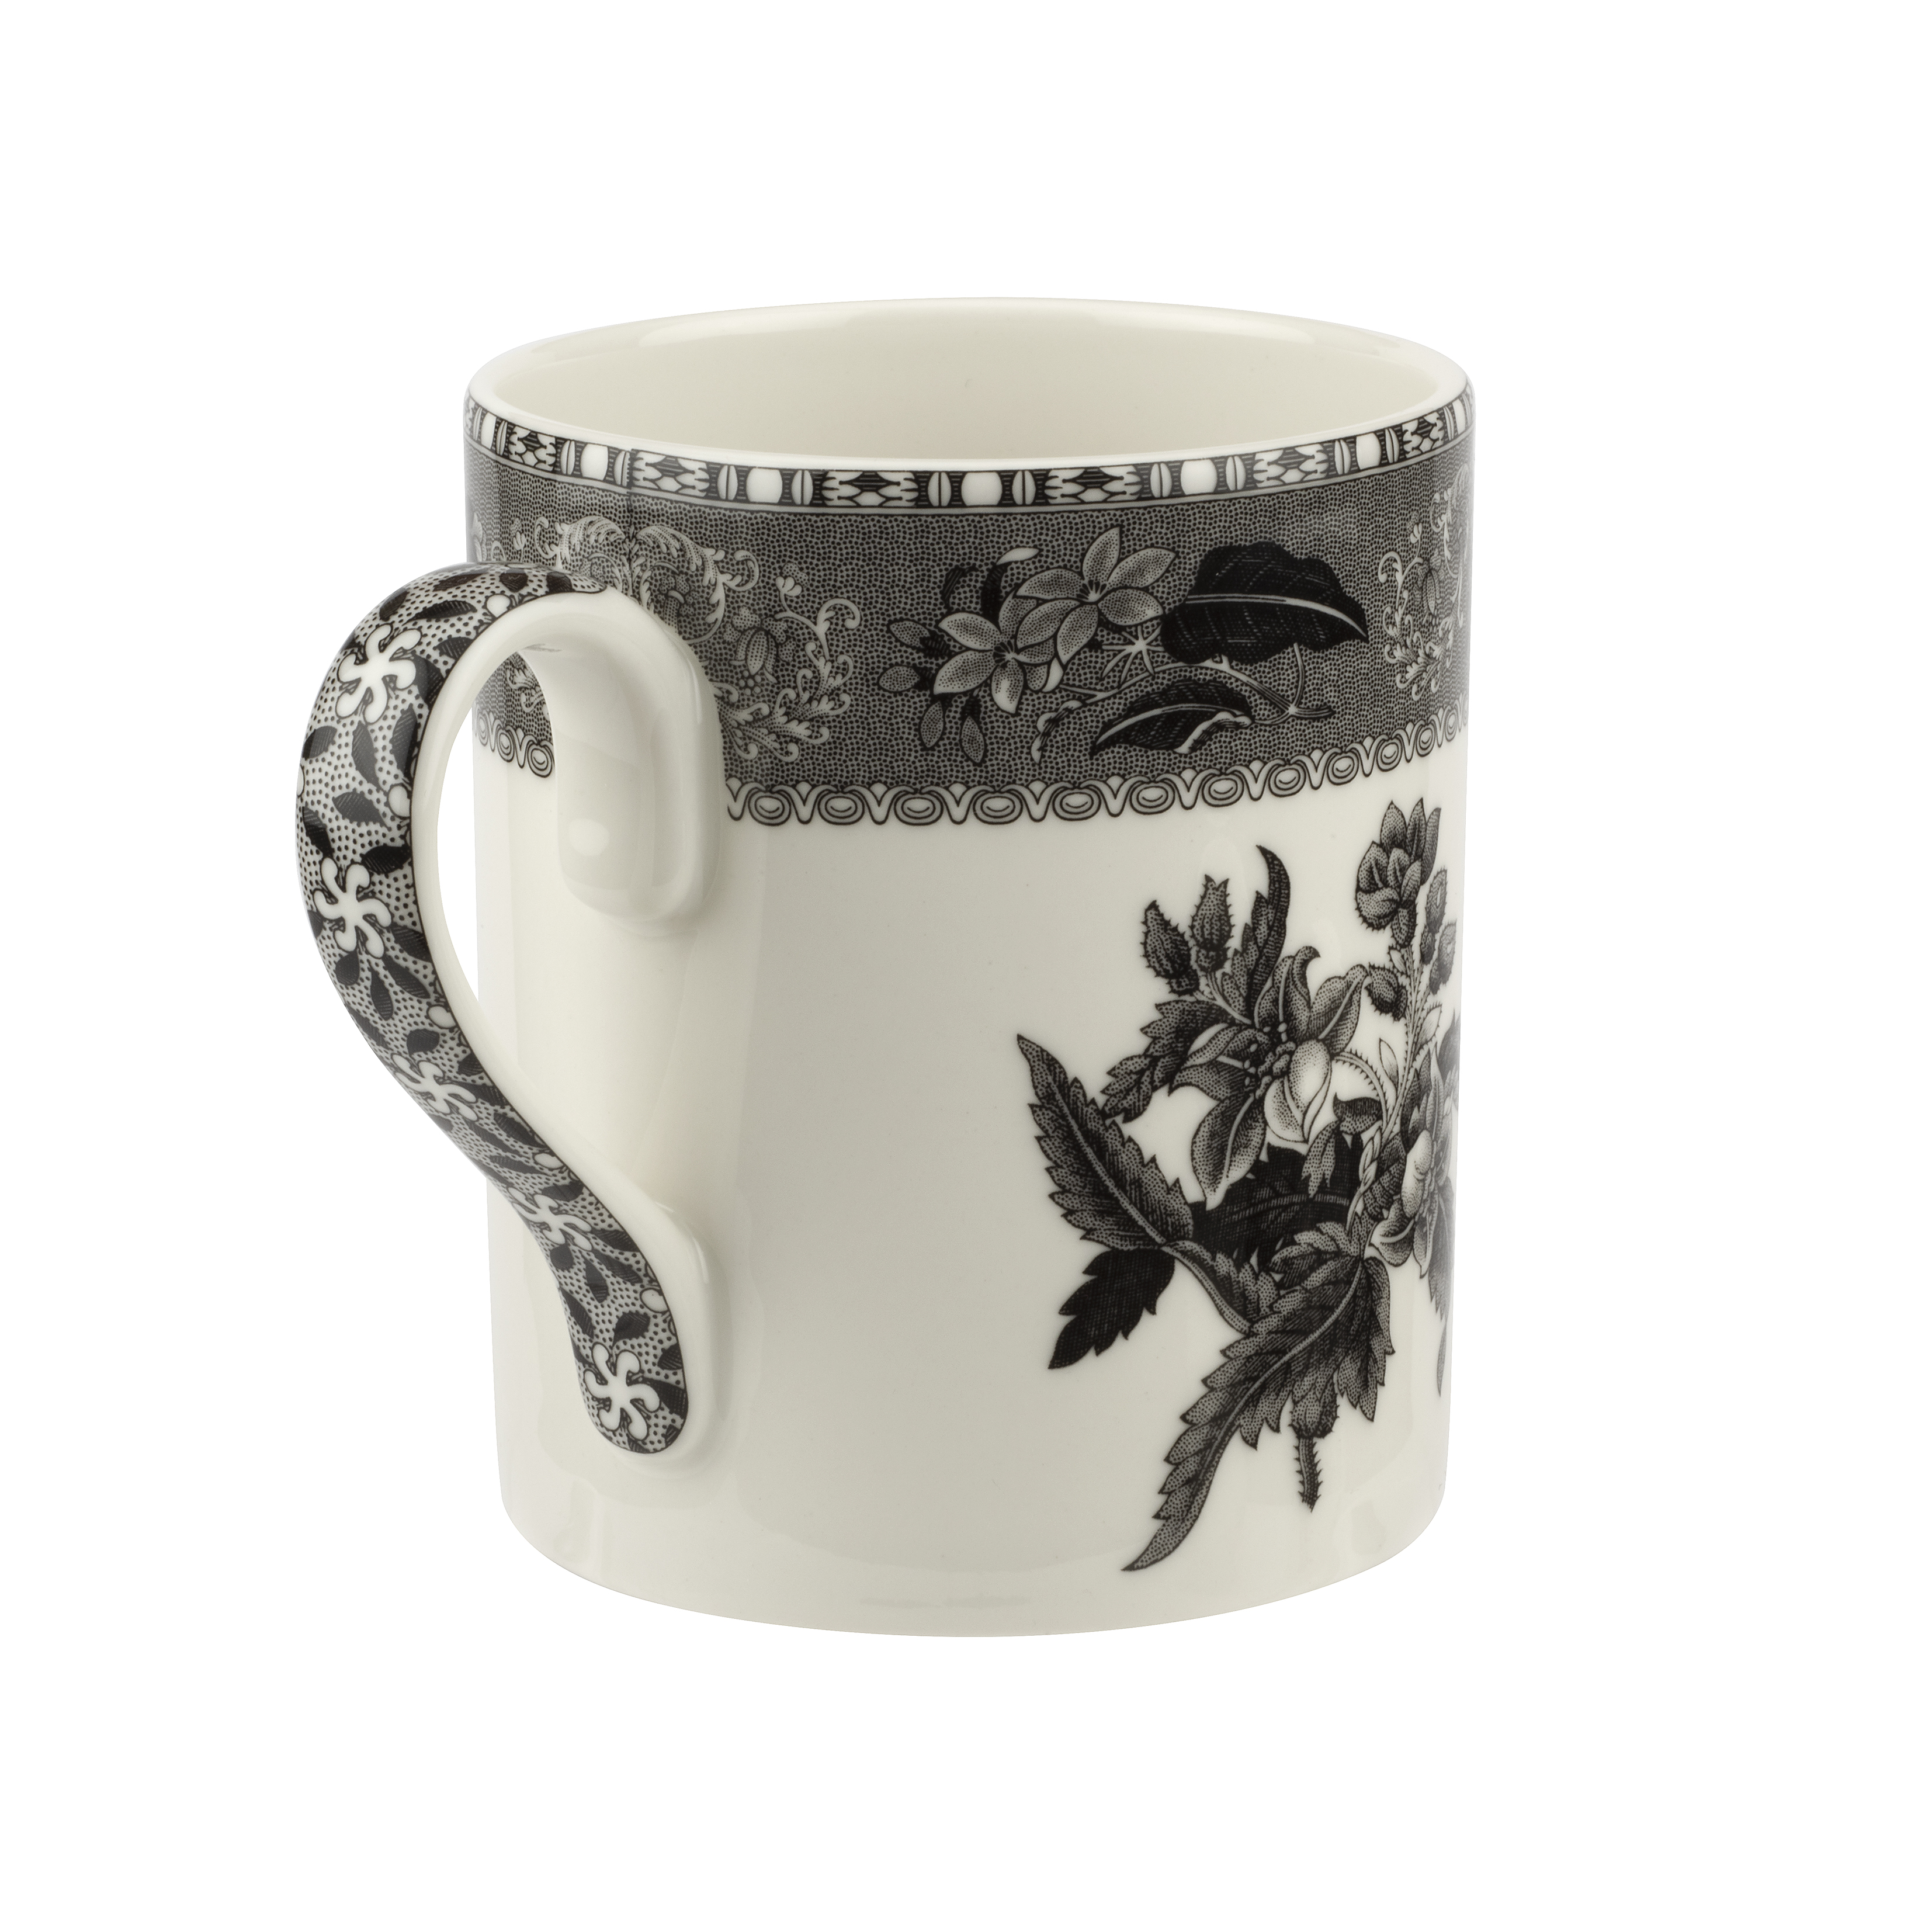 Spode Heritage 16 Ounce Mug (Camilla) image number 1